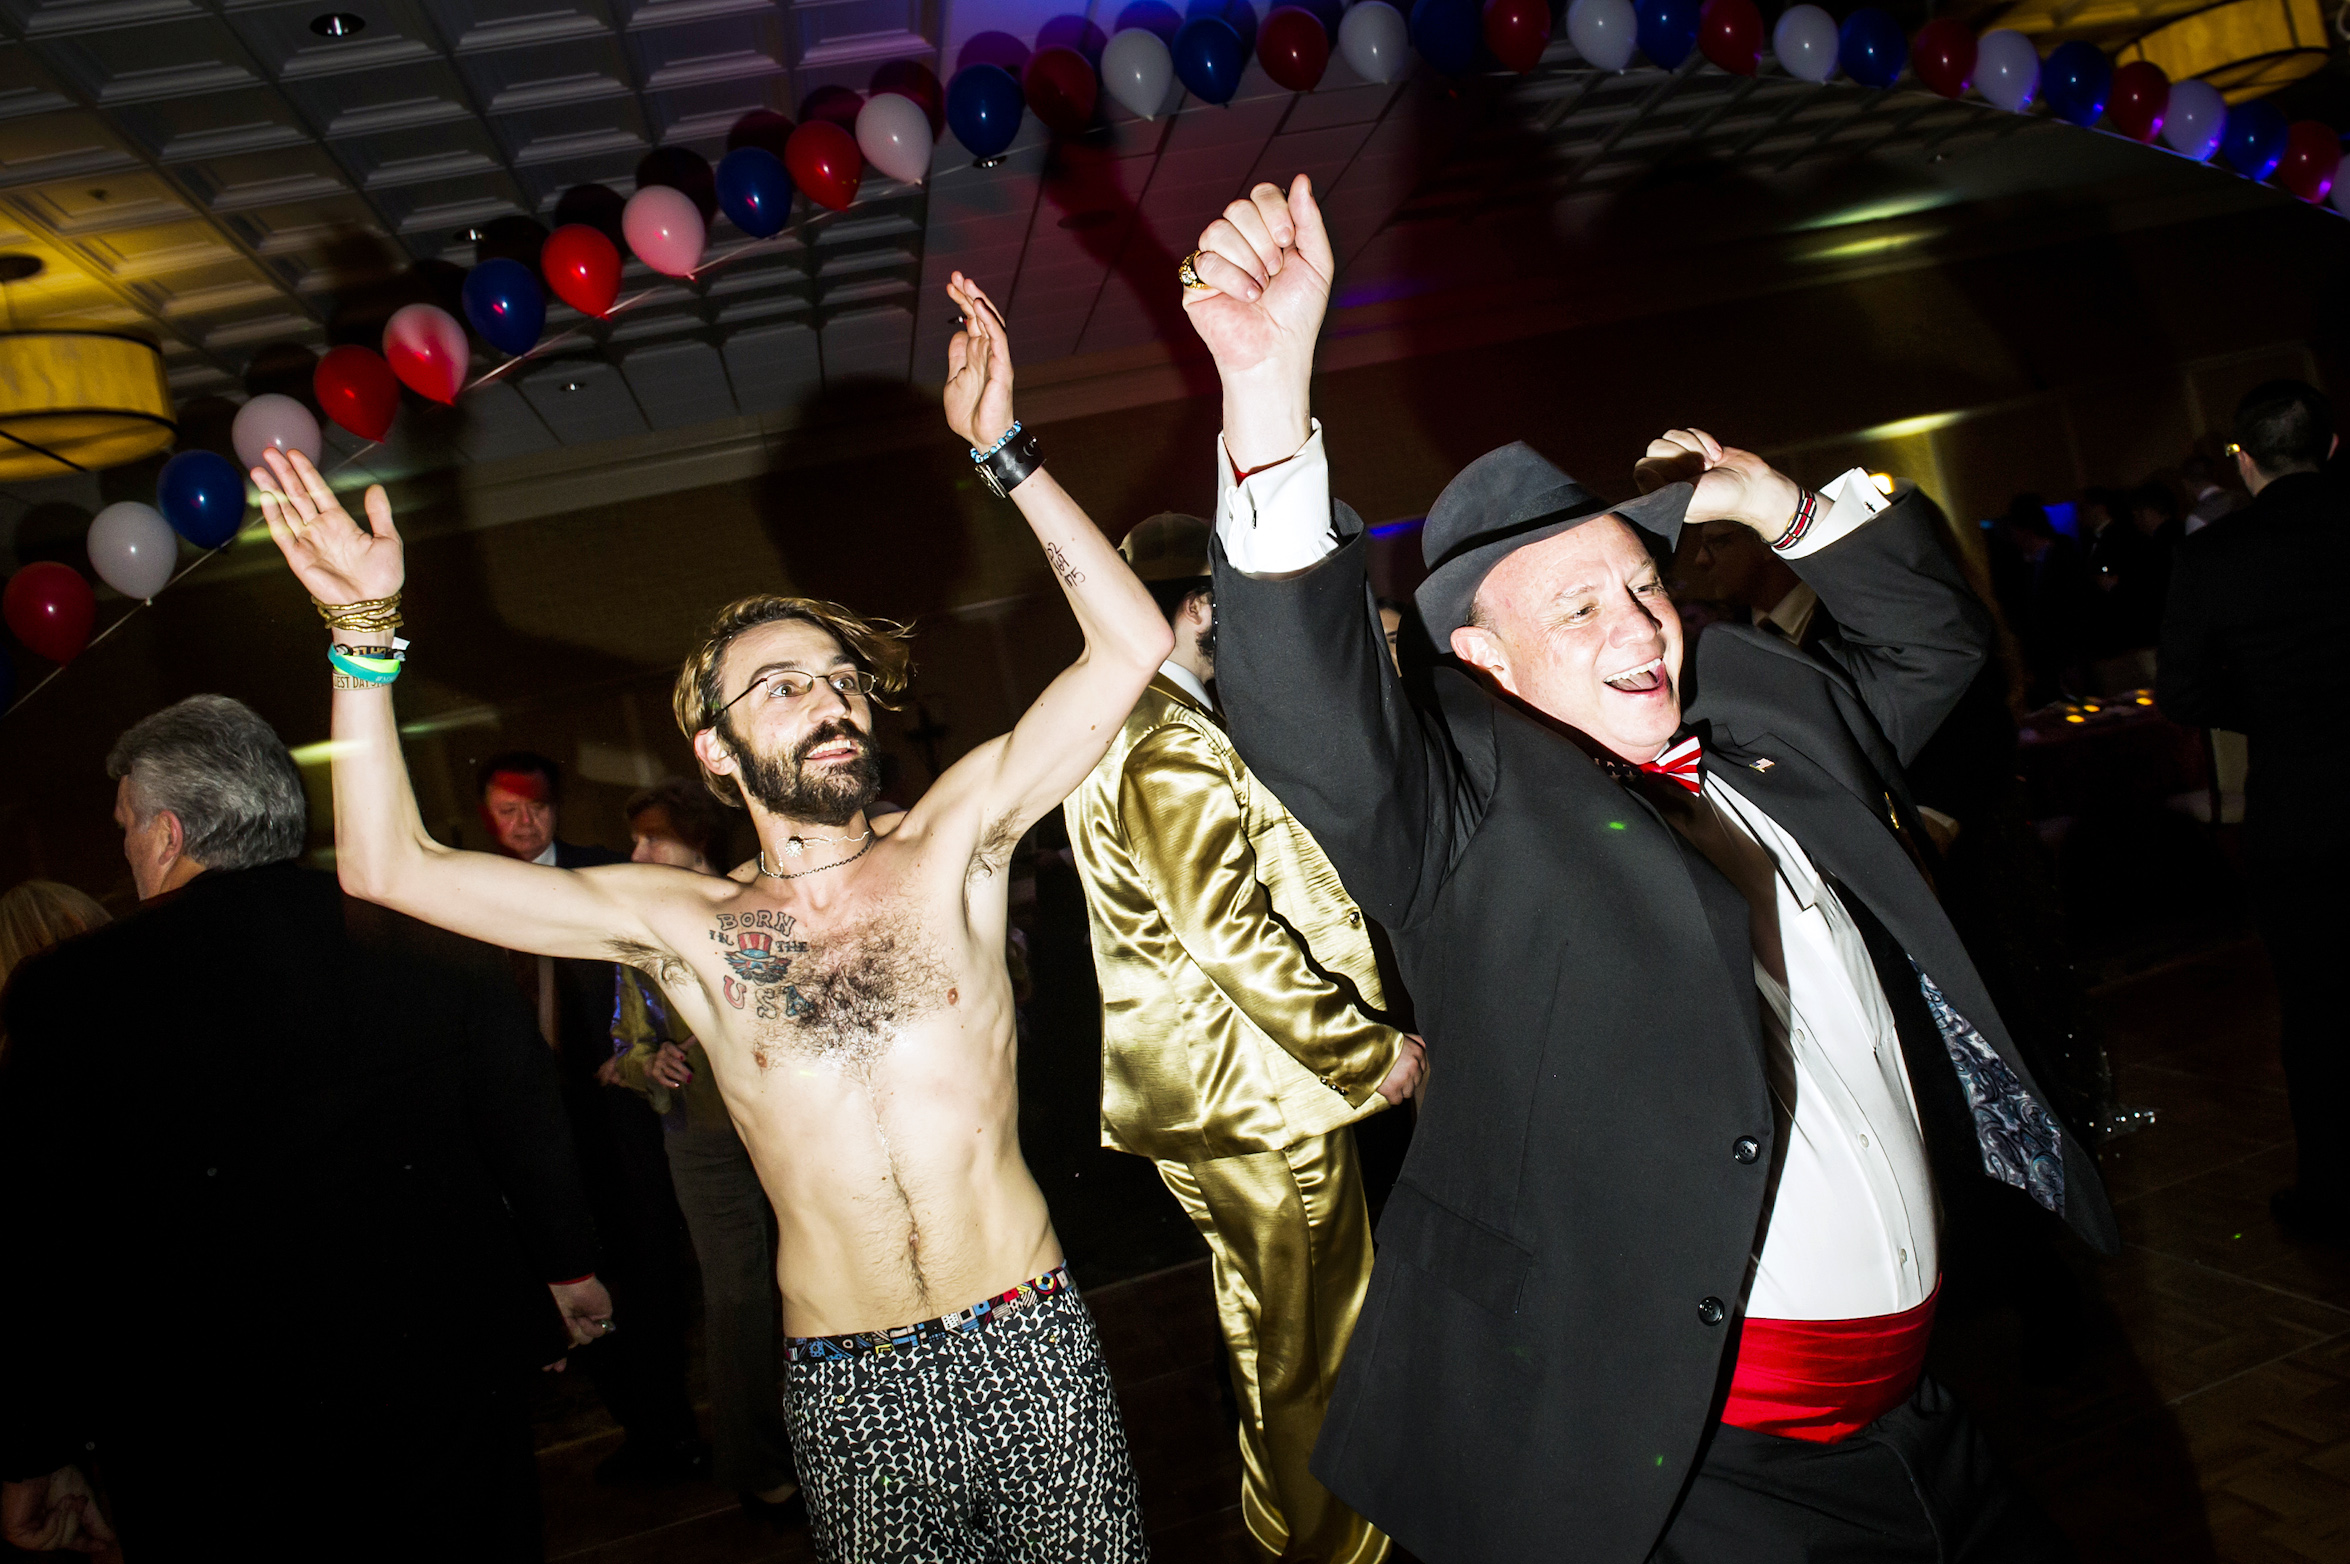 Dancing at the Inaugural Deploraball hosted by Gays for Trump at the Bolger Center in Potomac, Maryland on January 20, 2017.